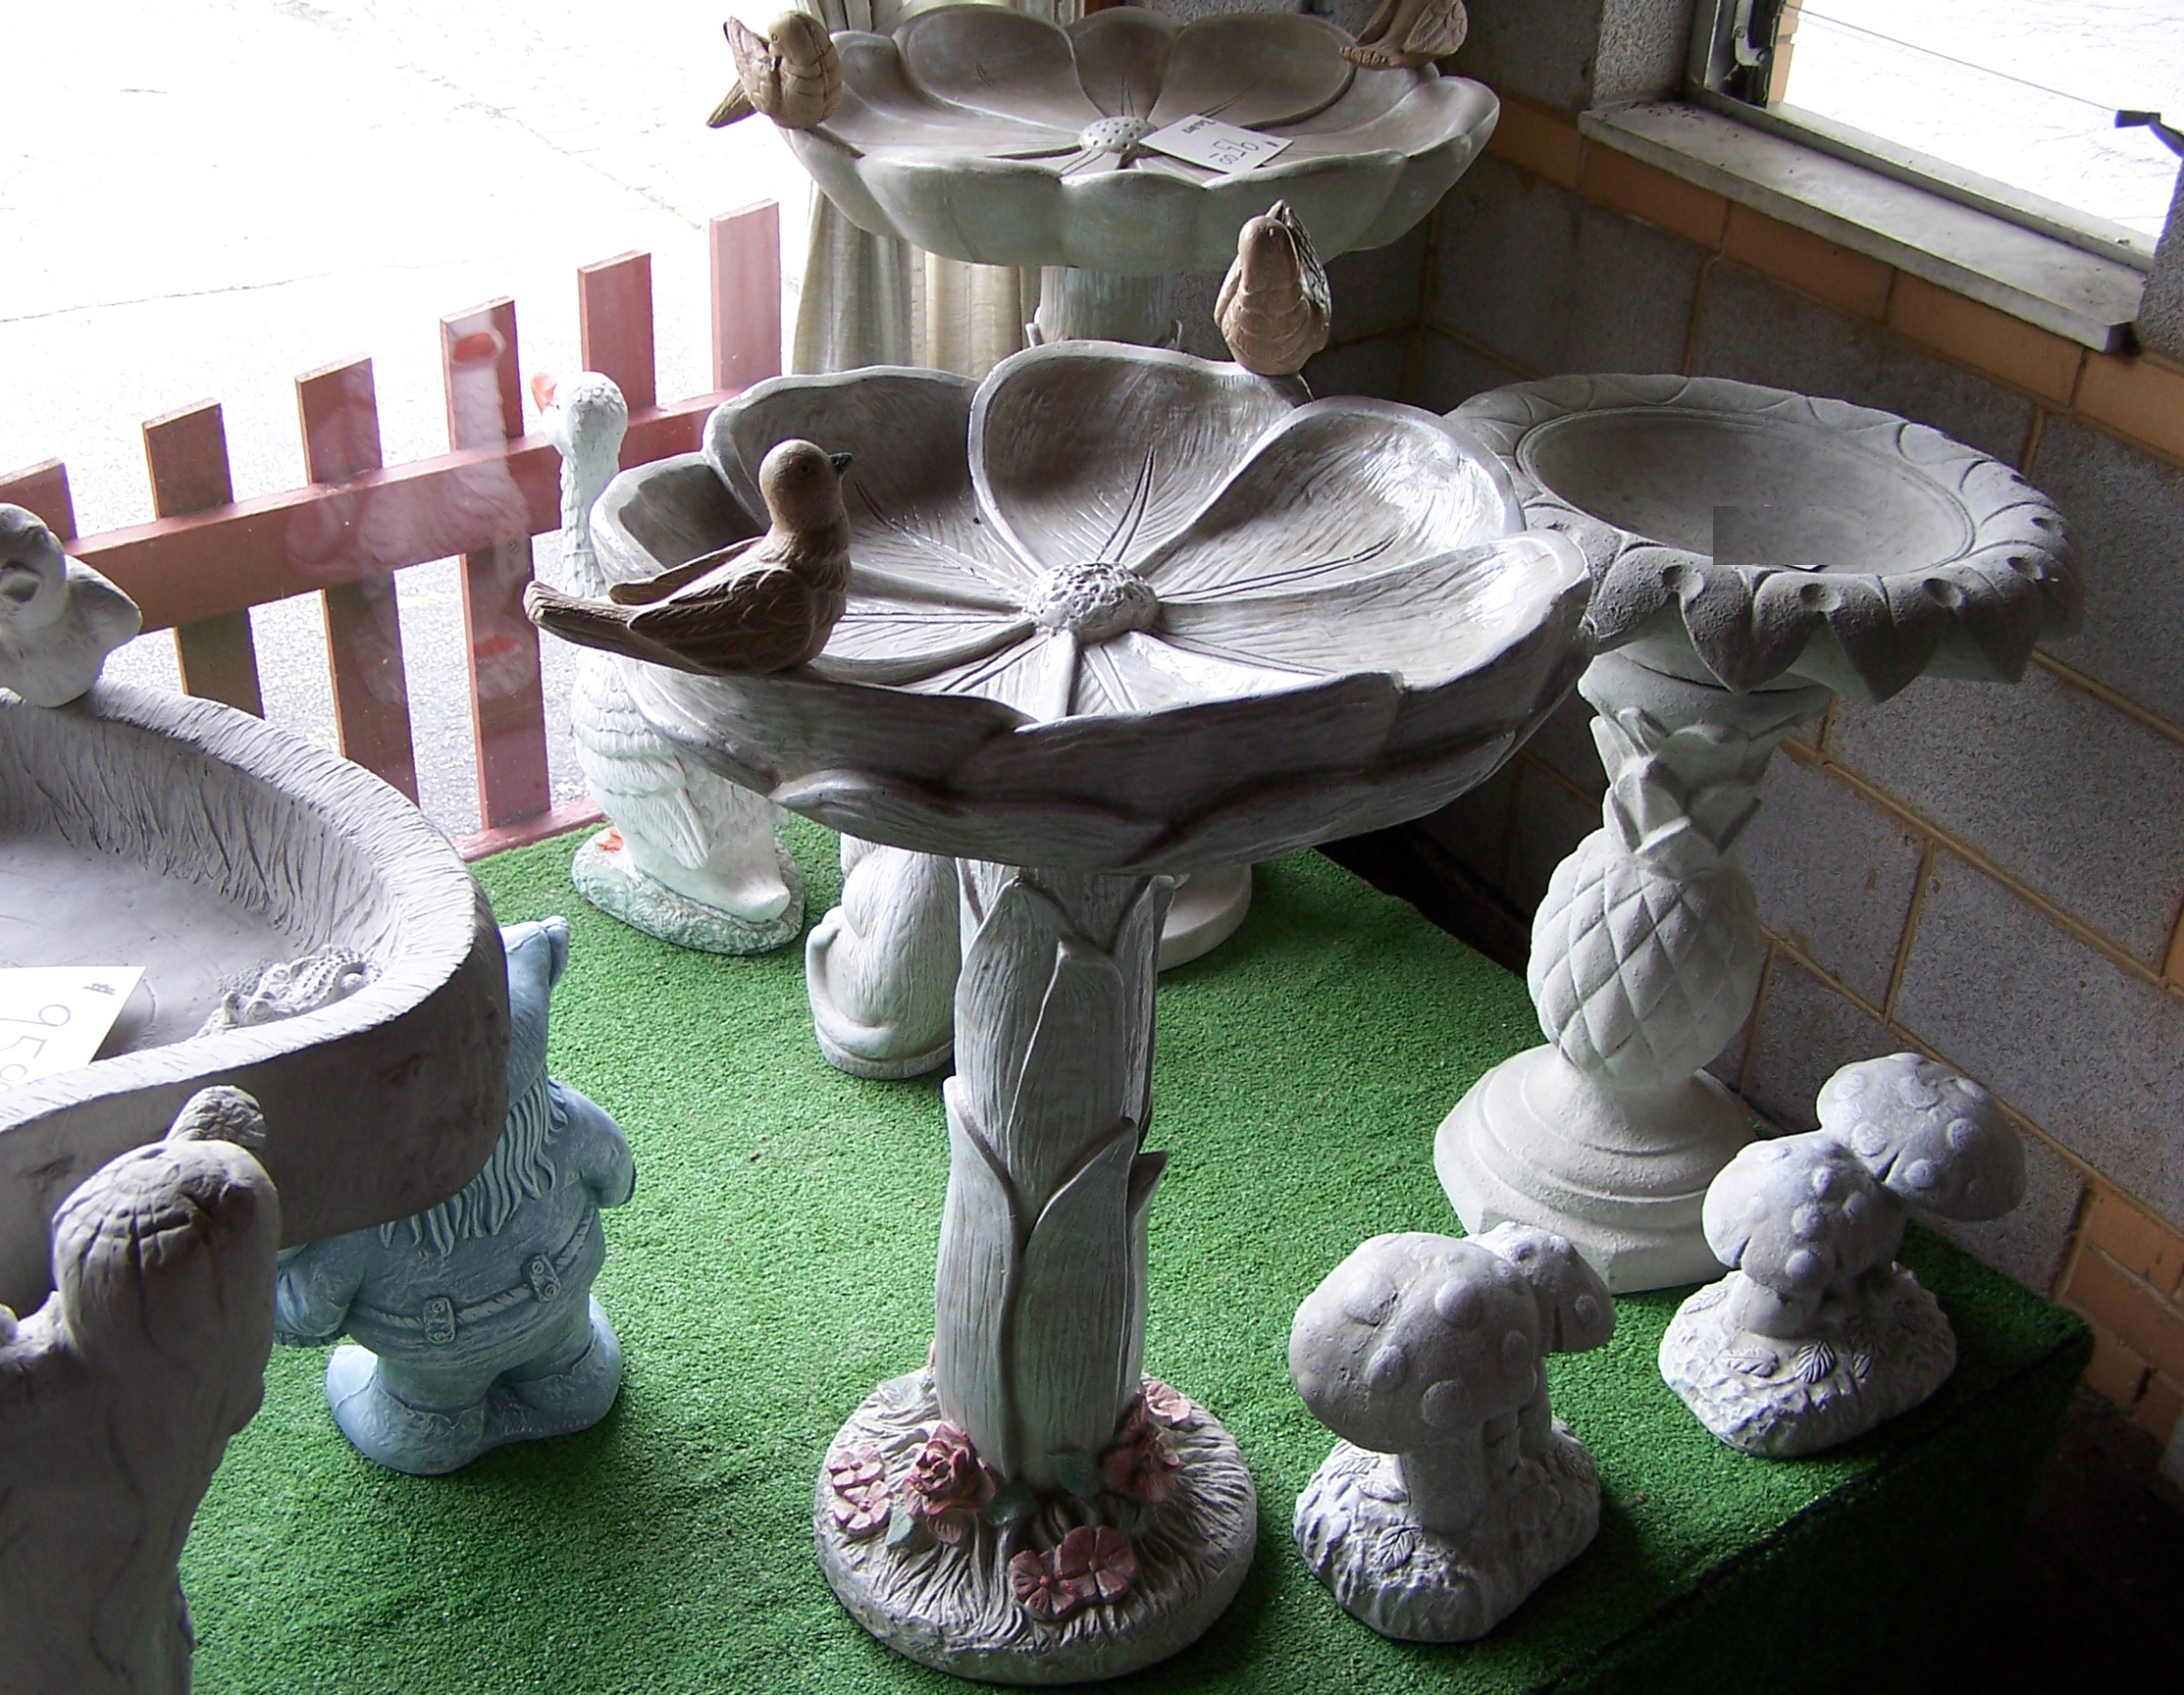 Bertacchi and sons home and garden cement statuary flower pots animals saints granite benches - Cement cloth garden ornaments ...